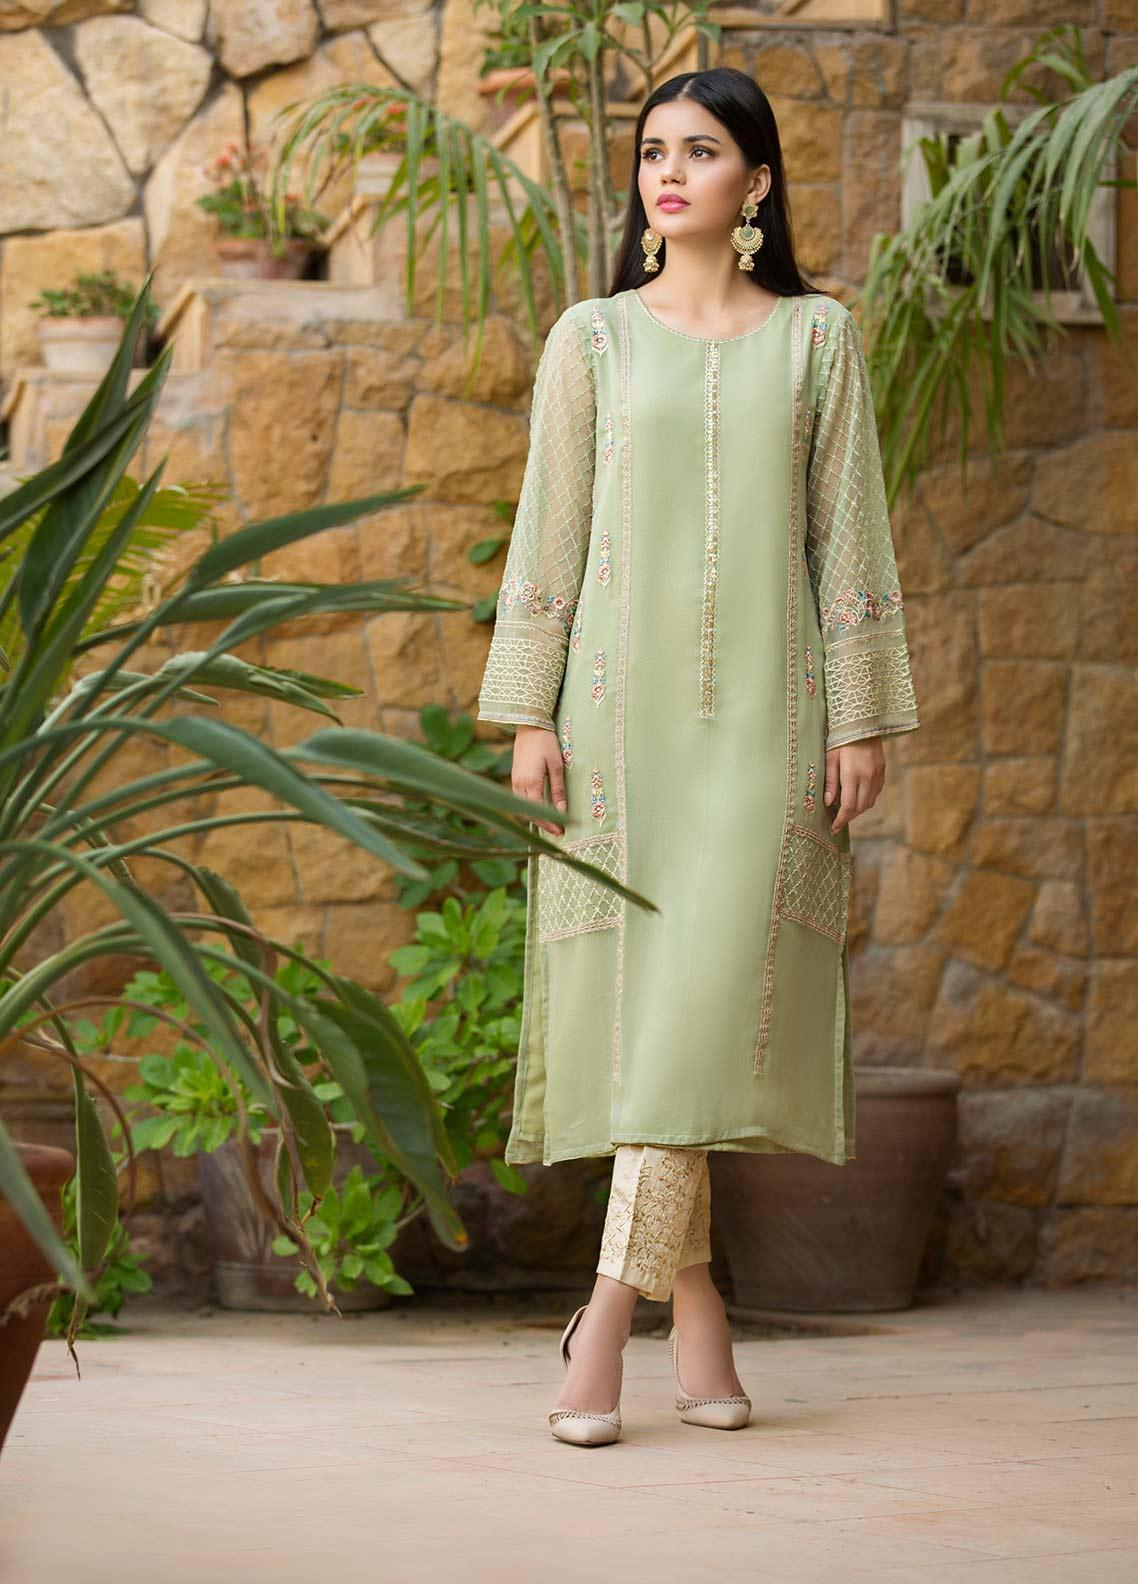 Dhanak Embroidered Chiffon Stitched Kurtis DA-1068 Green